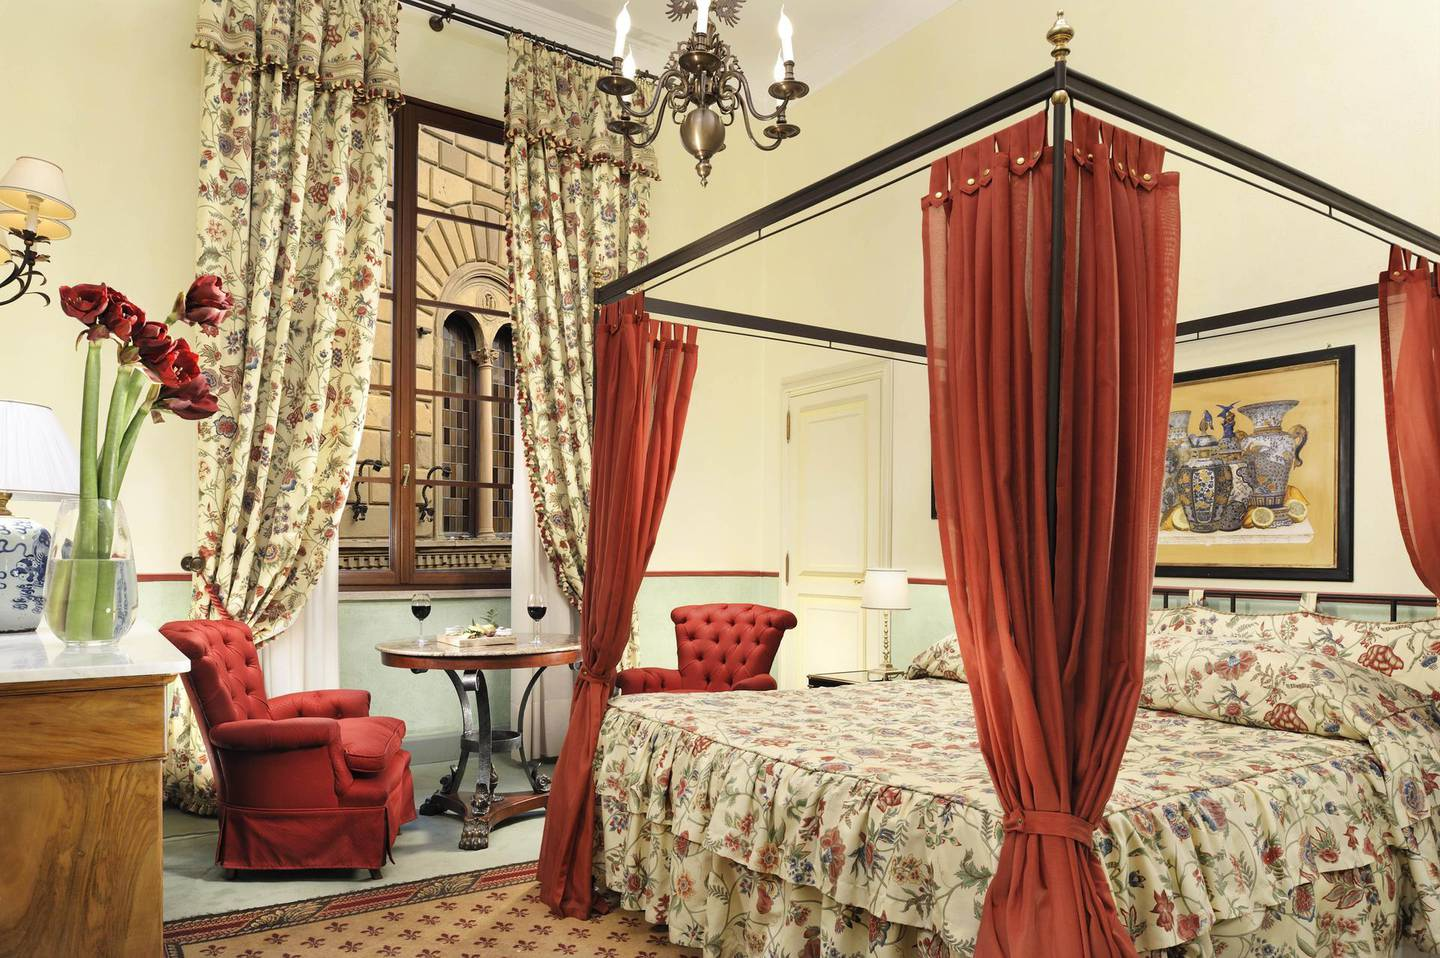 Classic Double at Grand Hotel Continental Siena in Italy. Courtesy The Leading Hotels of the World